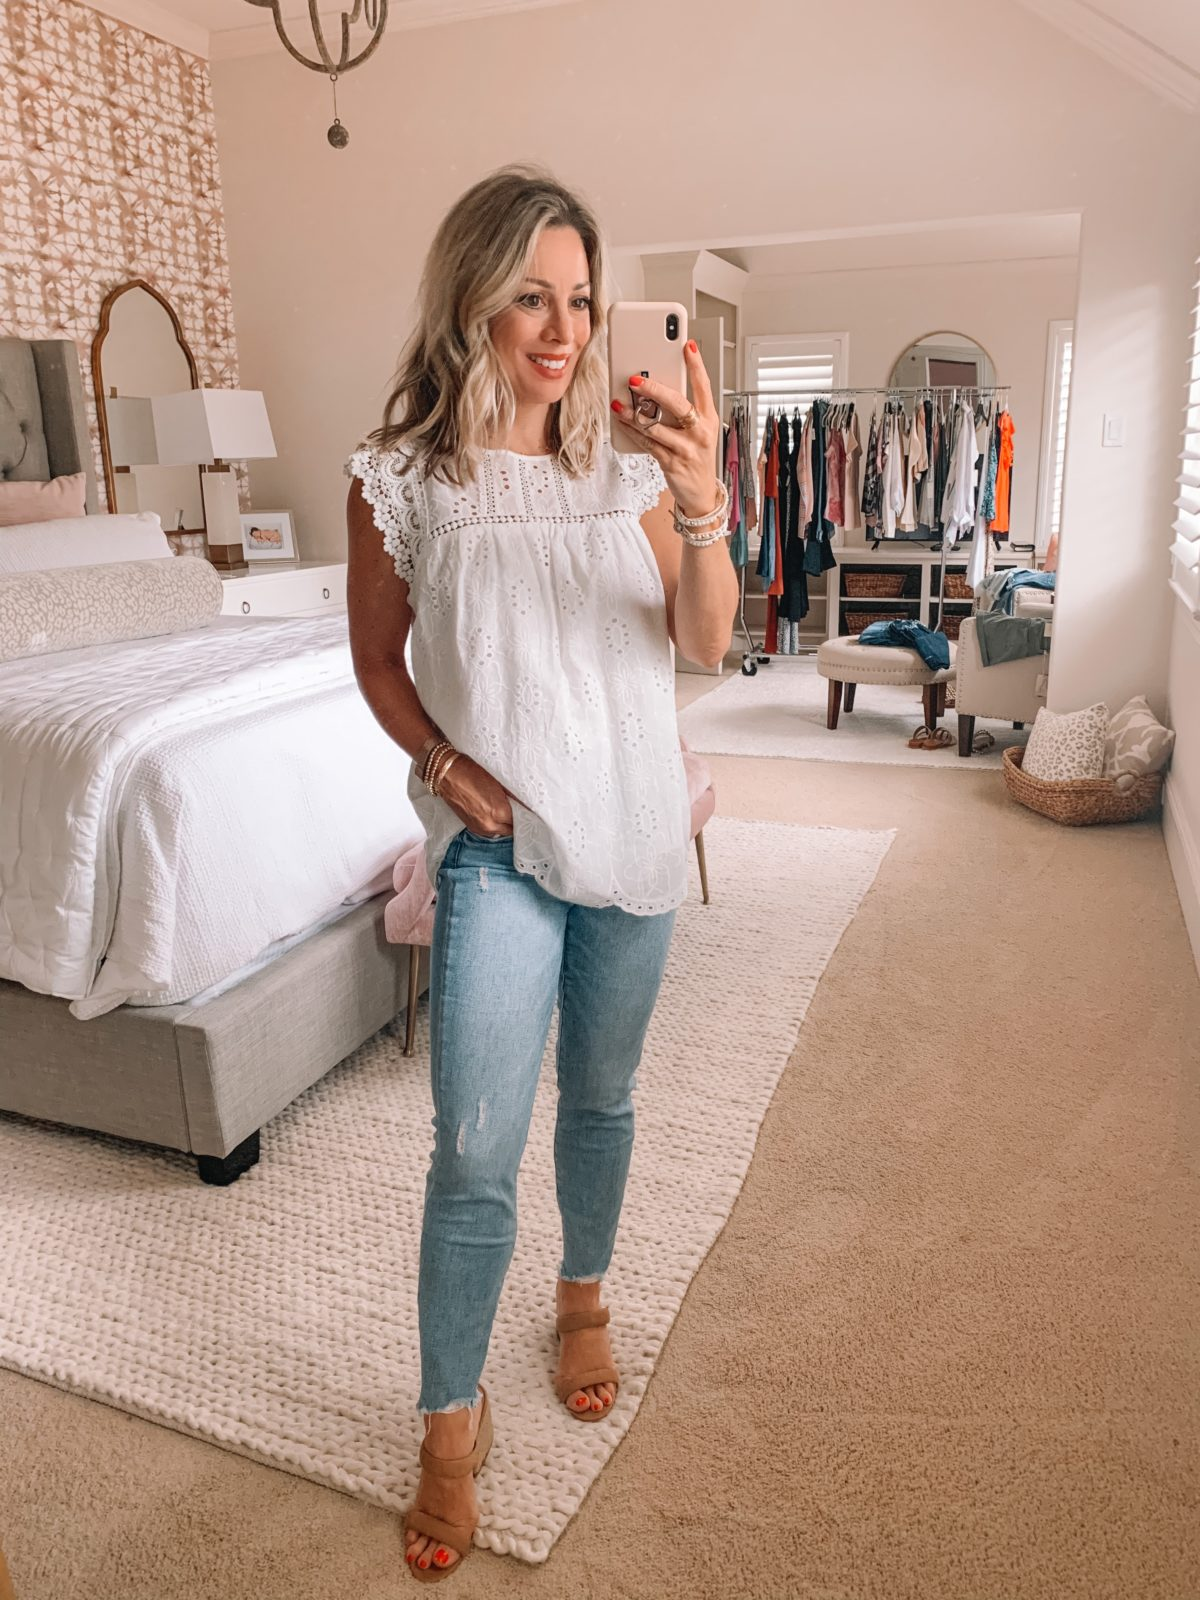 Dressing Room Finds Nordstrom and Target, White Eyelet Top, Skinny Jeans, Sandals